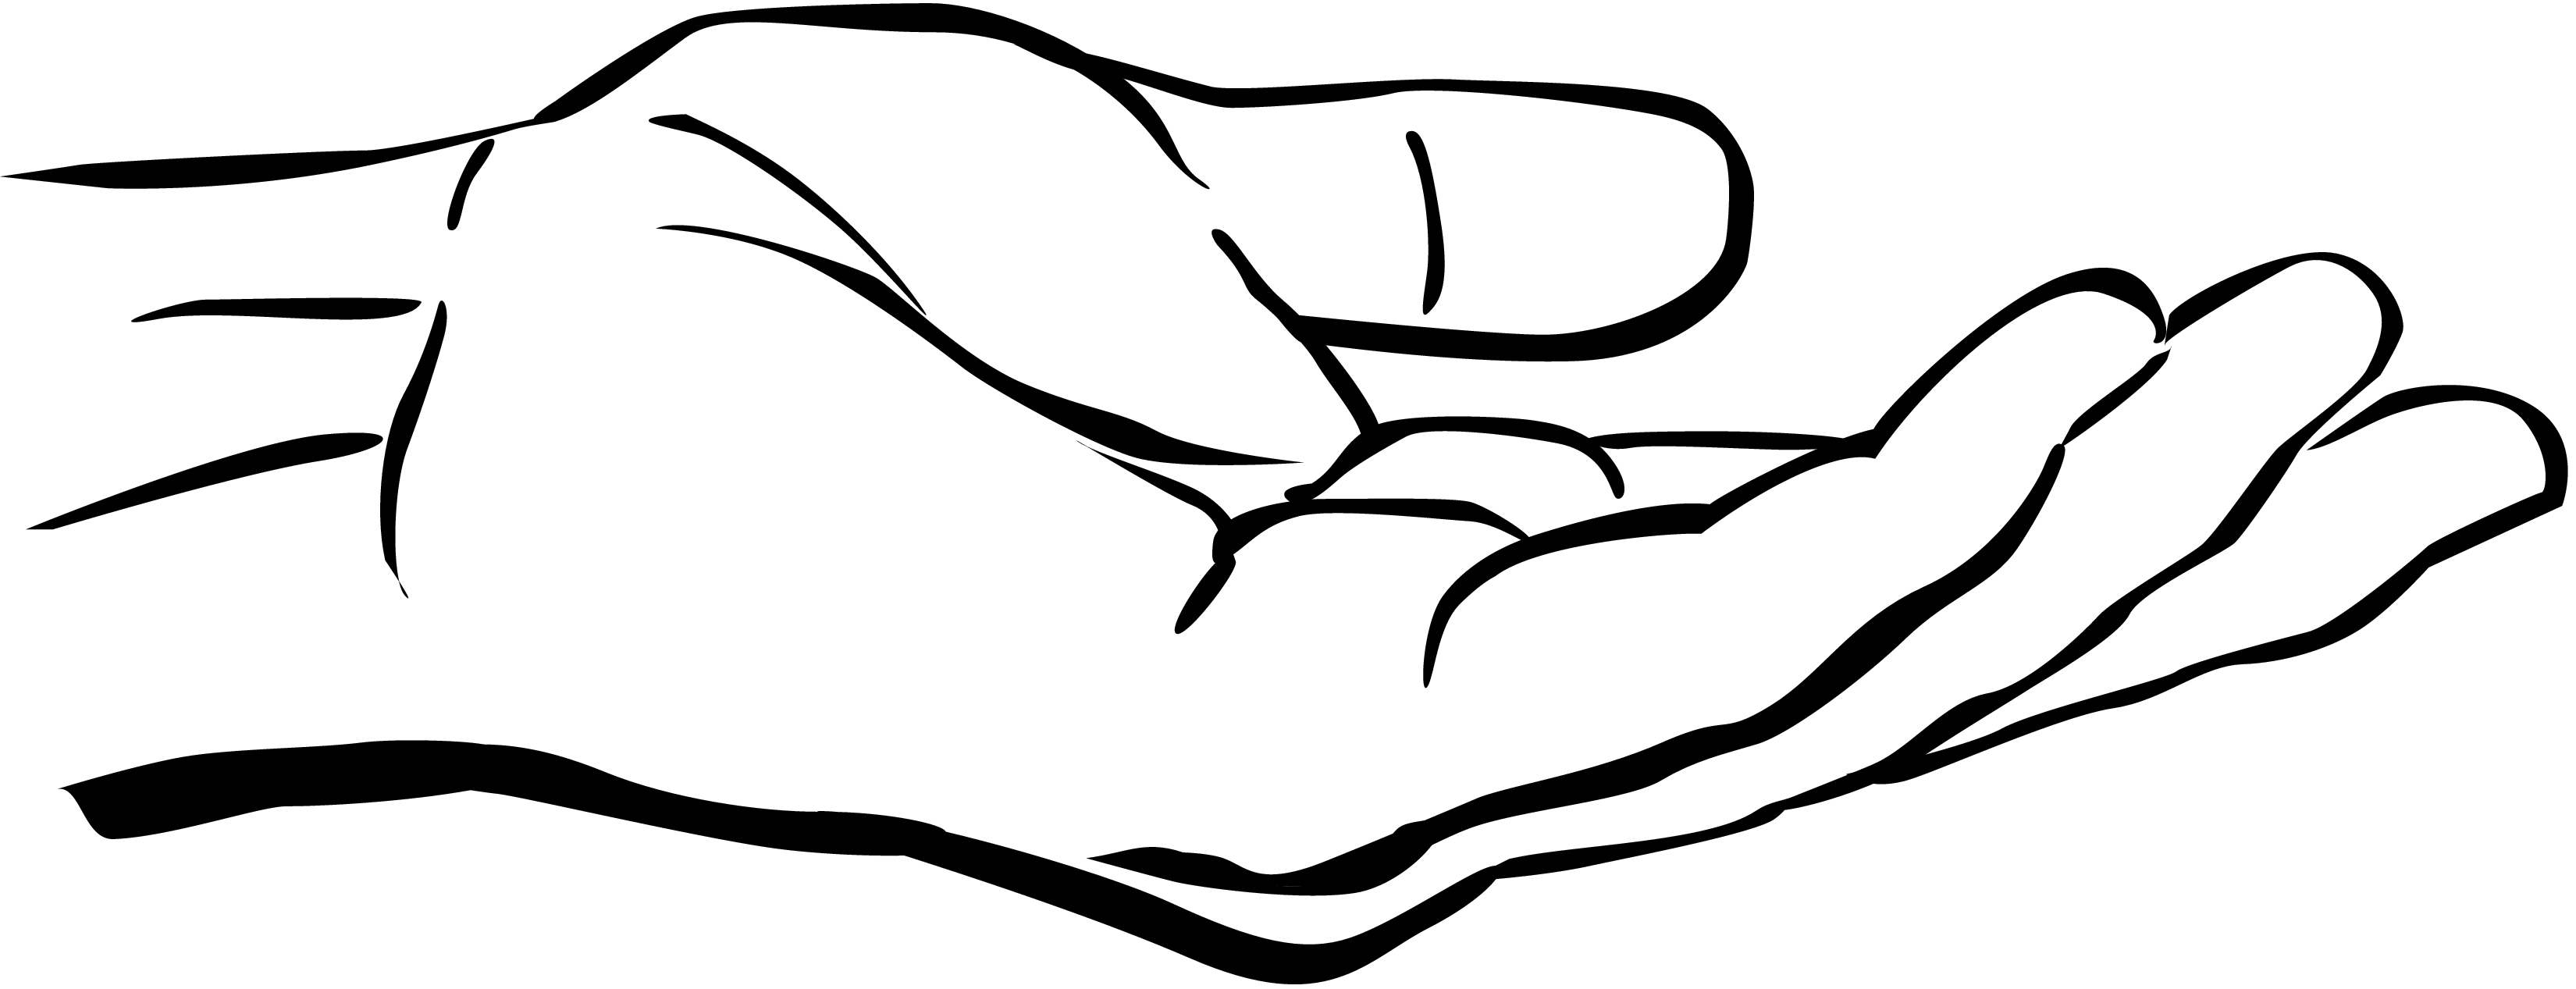 Hand  black and white helping hands clipart black and white clipartfox